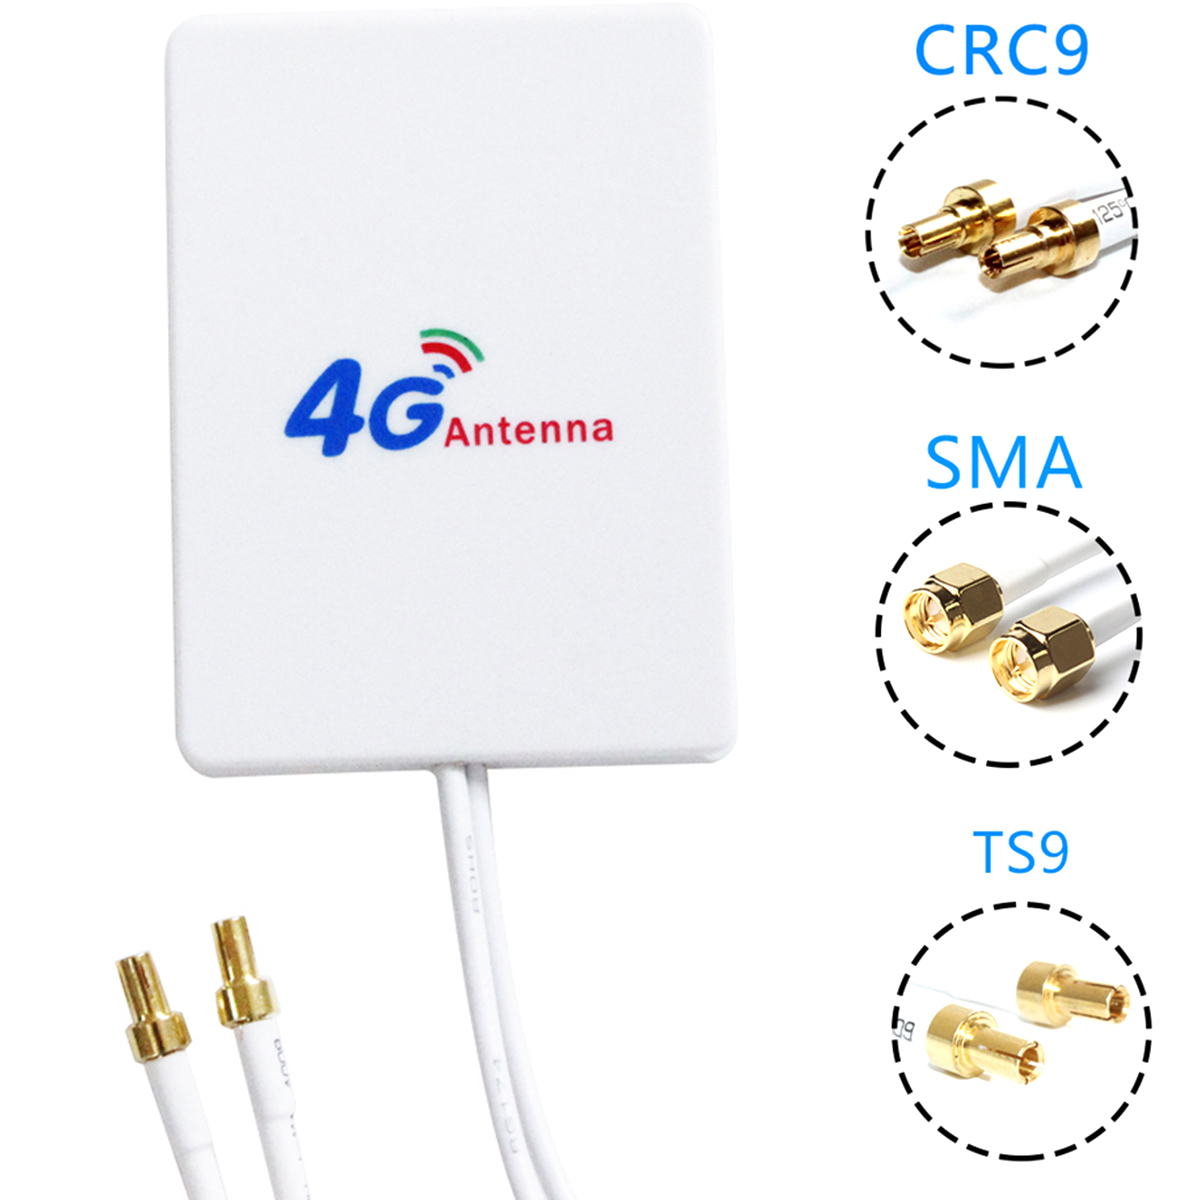 3 Meter 3G 4G LTE Router Modem Aerial External Antenna With TS9 / CRC9 / SMA Connector Cable